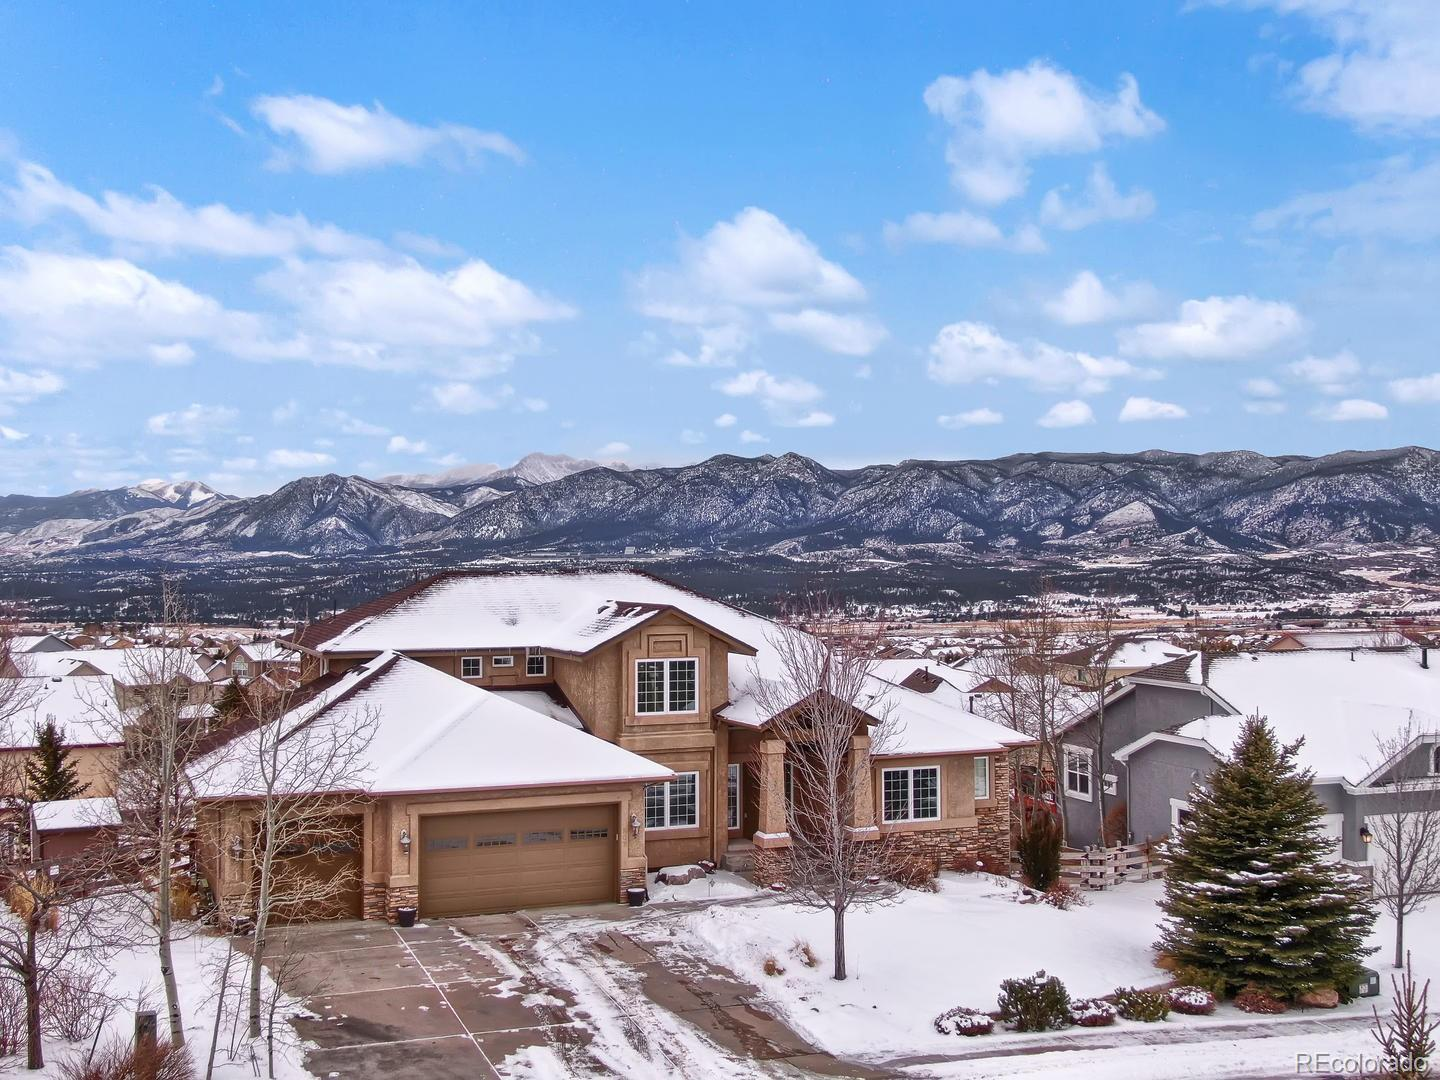 MLS# 5159811 - 1 - 207 Green Rock Place, Monument, CO 80132